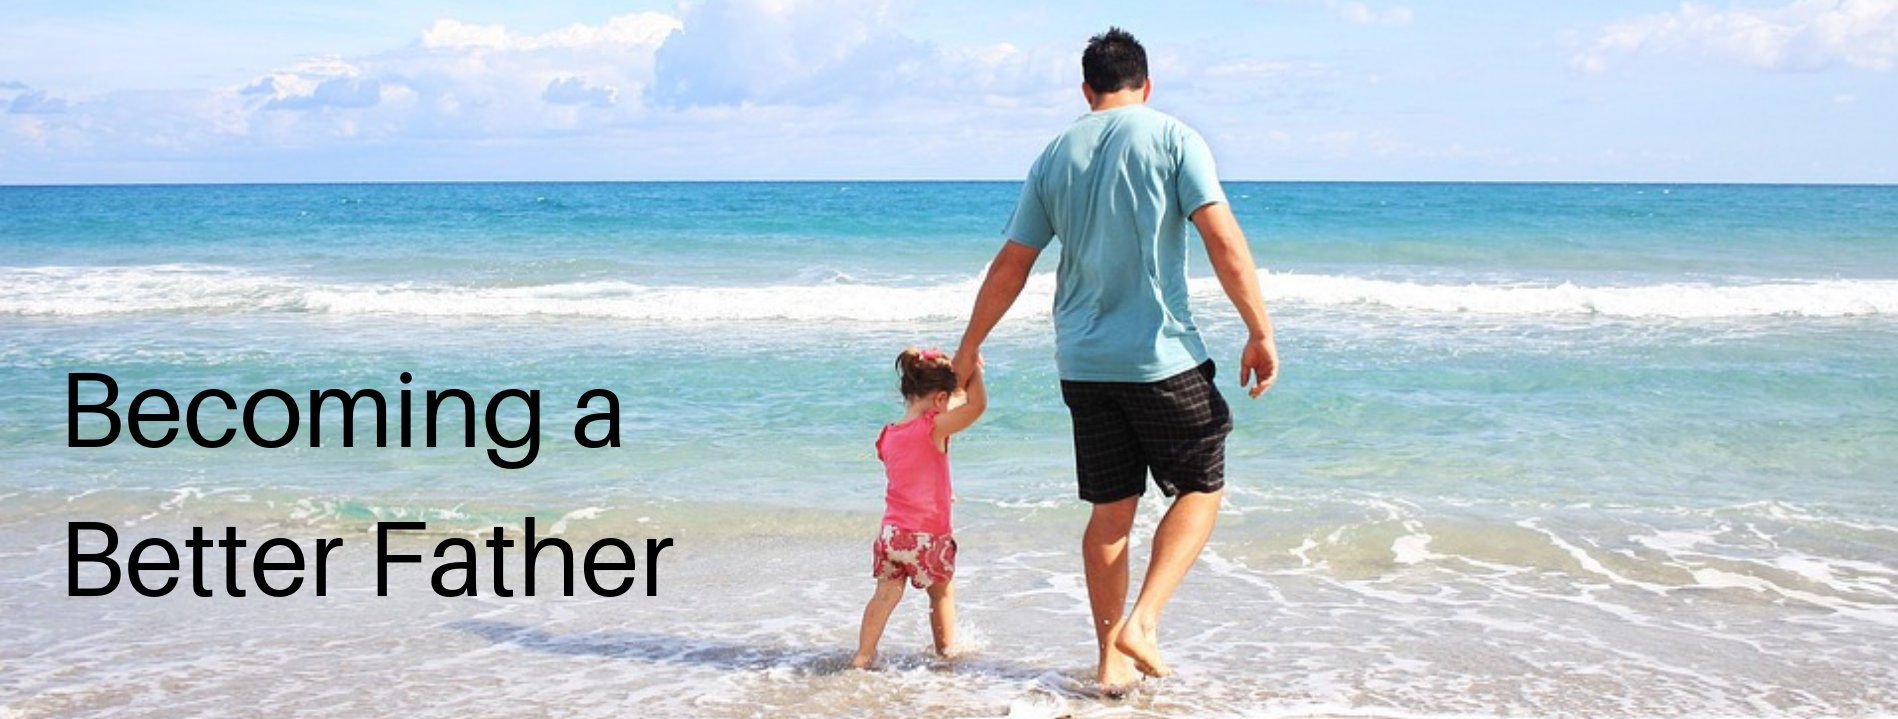 Becoming a better father